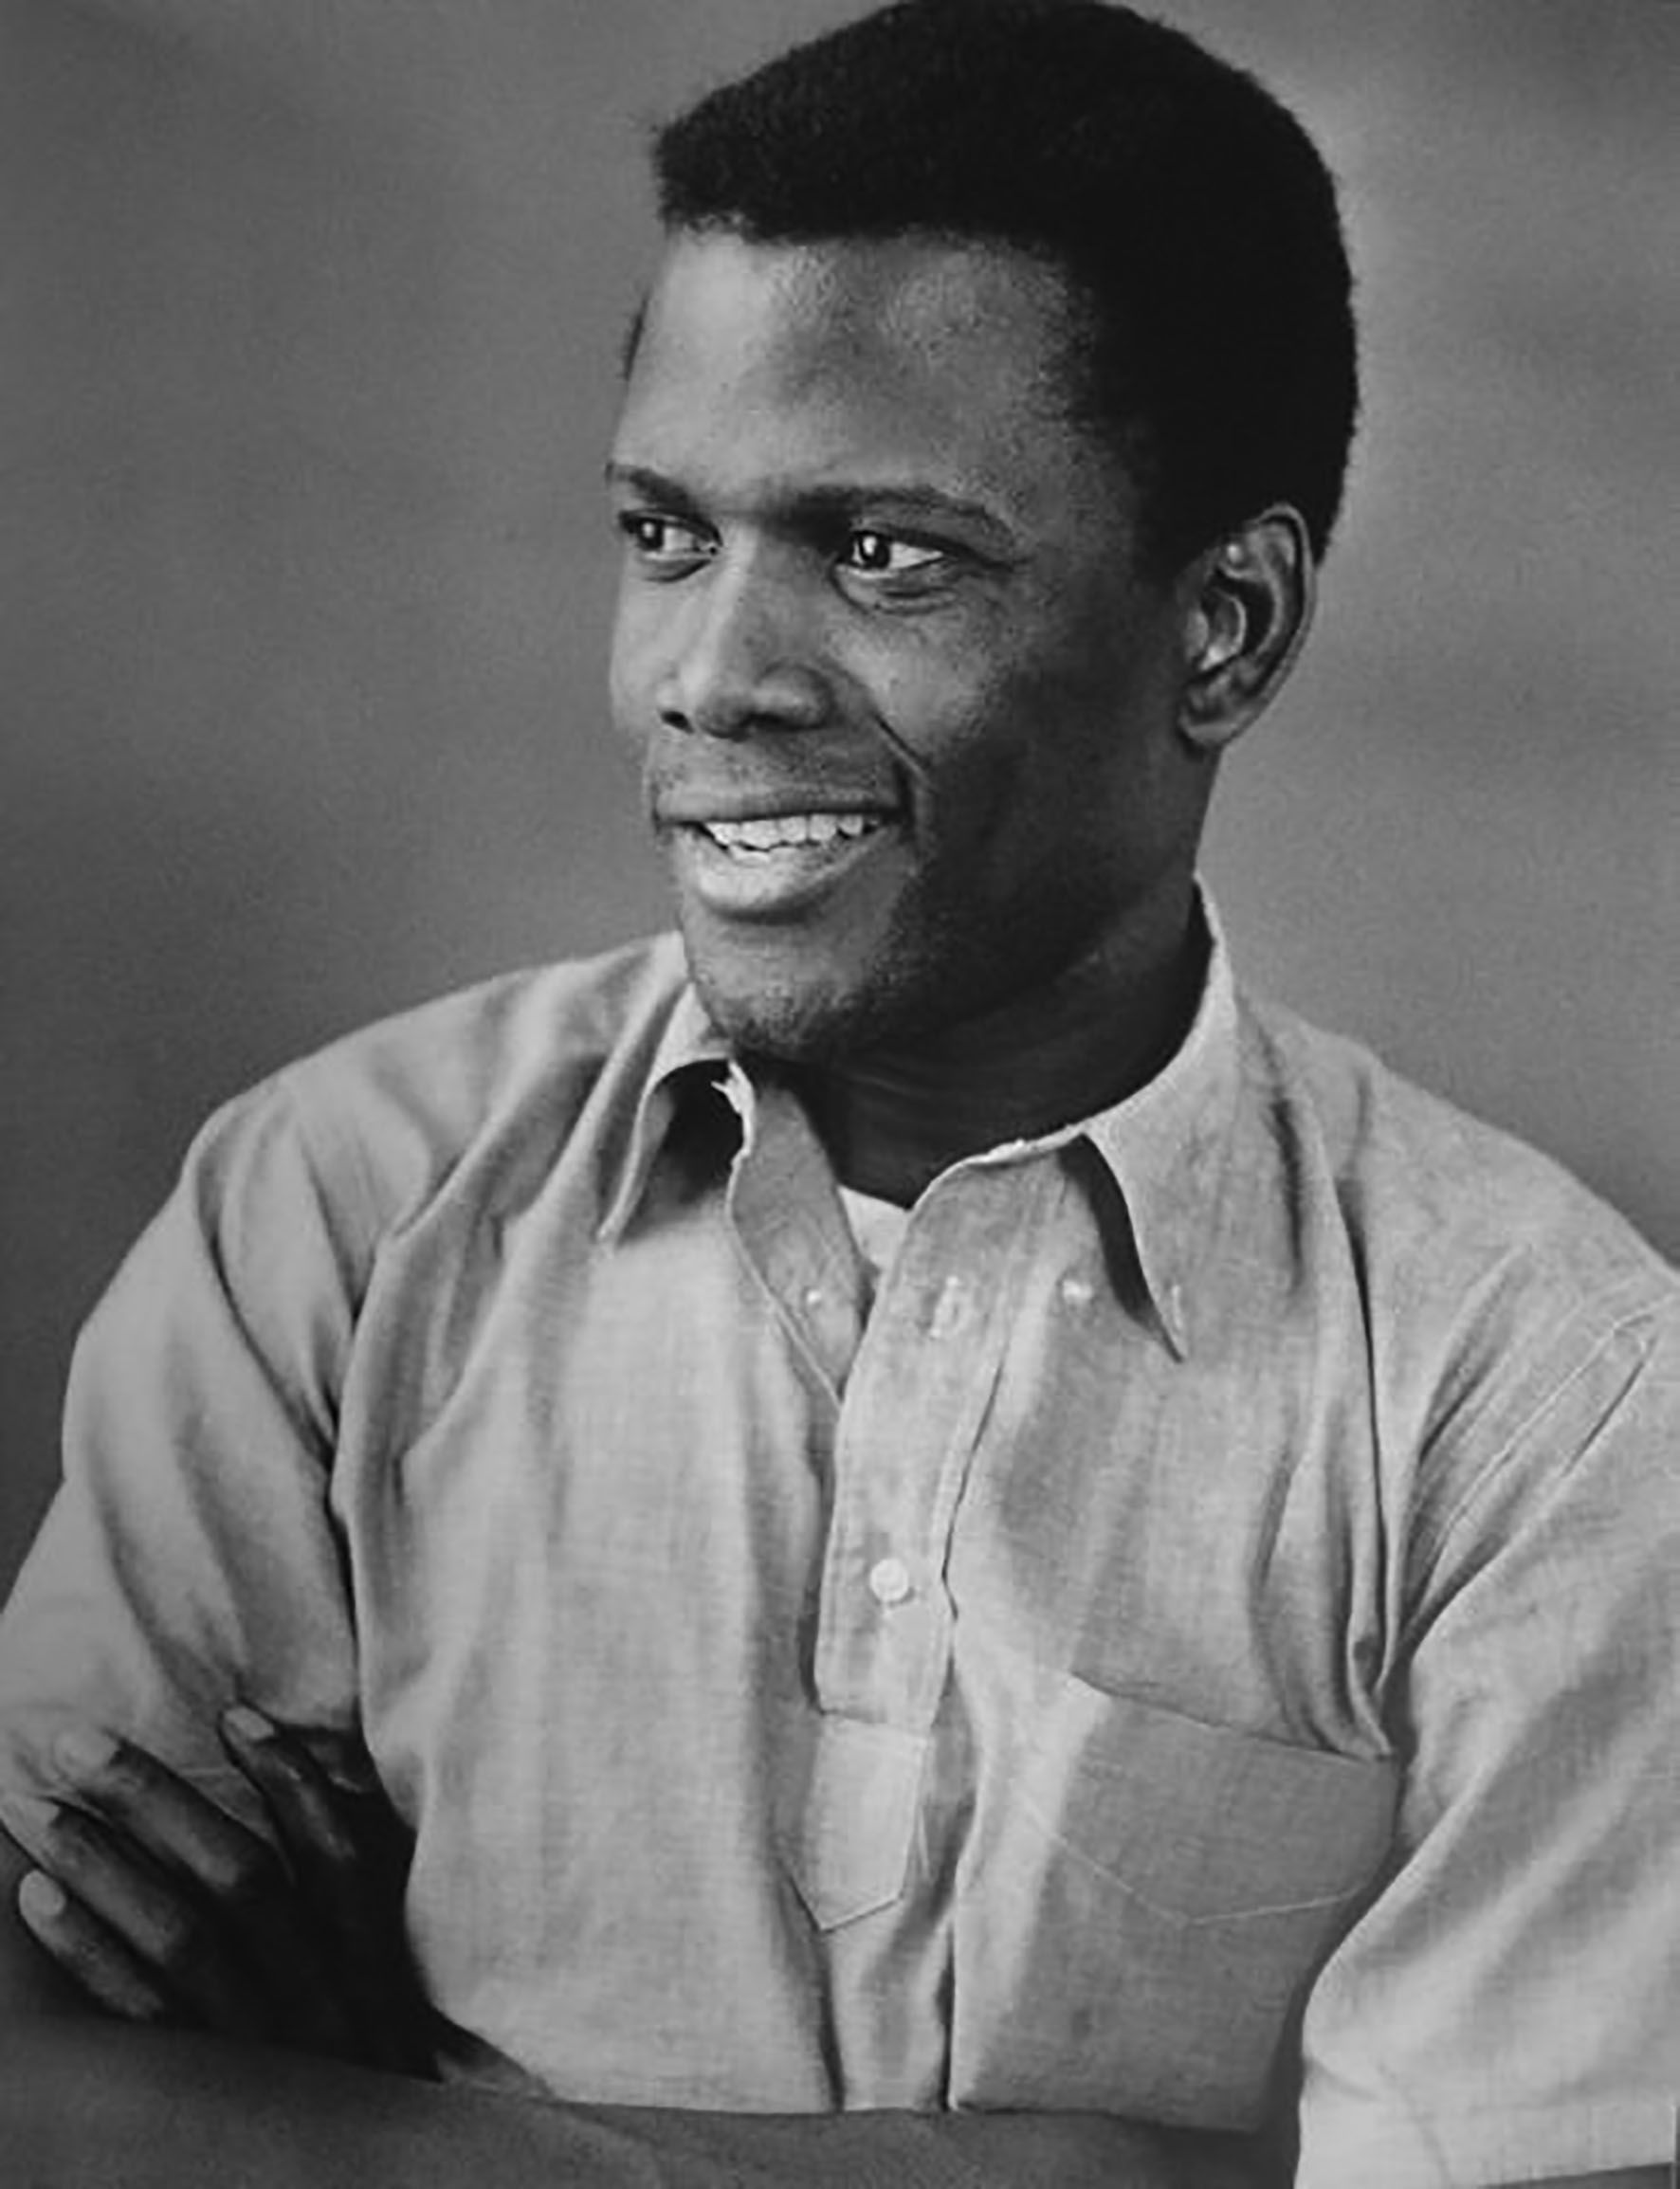 sidney poitier In the 50s, he was a black hero by the 60s he was being attacked as an uncle  tom now, sidney poitier has regained his rightful role: as the.